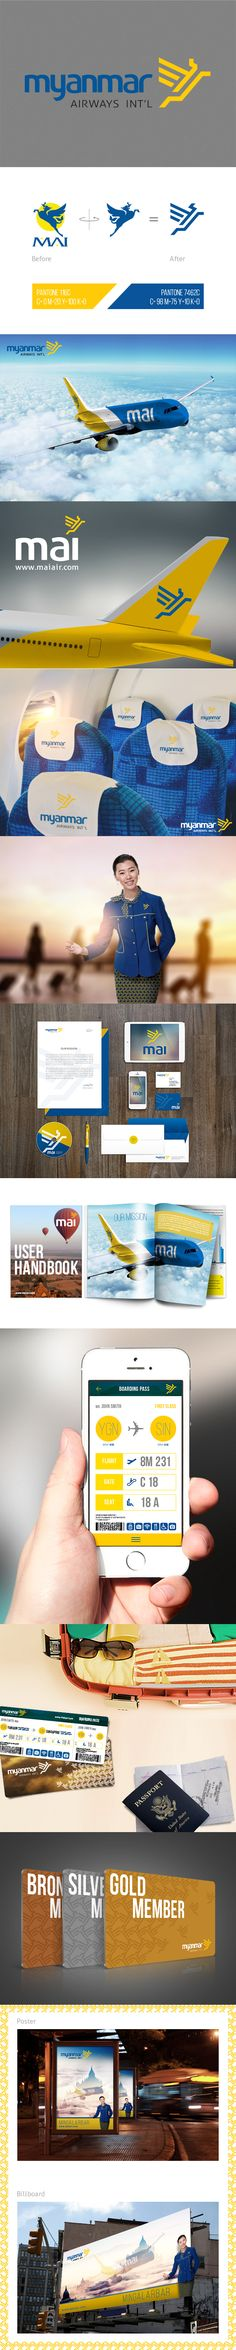 This project is not an actual commercial purpose. It is just a concept of re-branding an airline company in Myanmar.